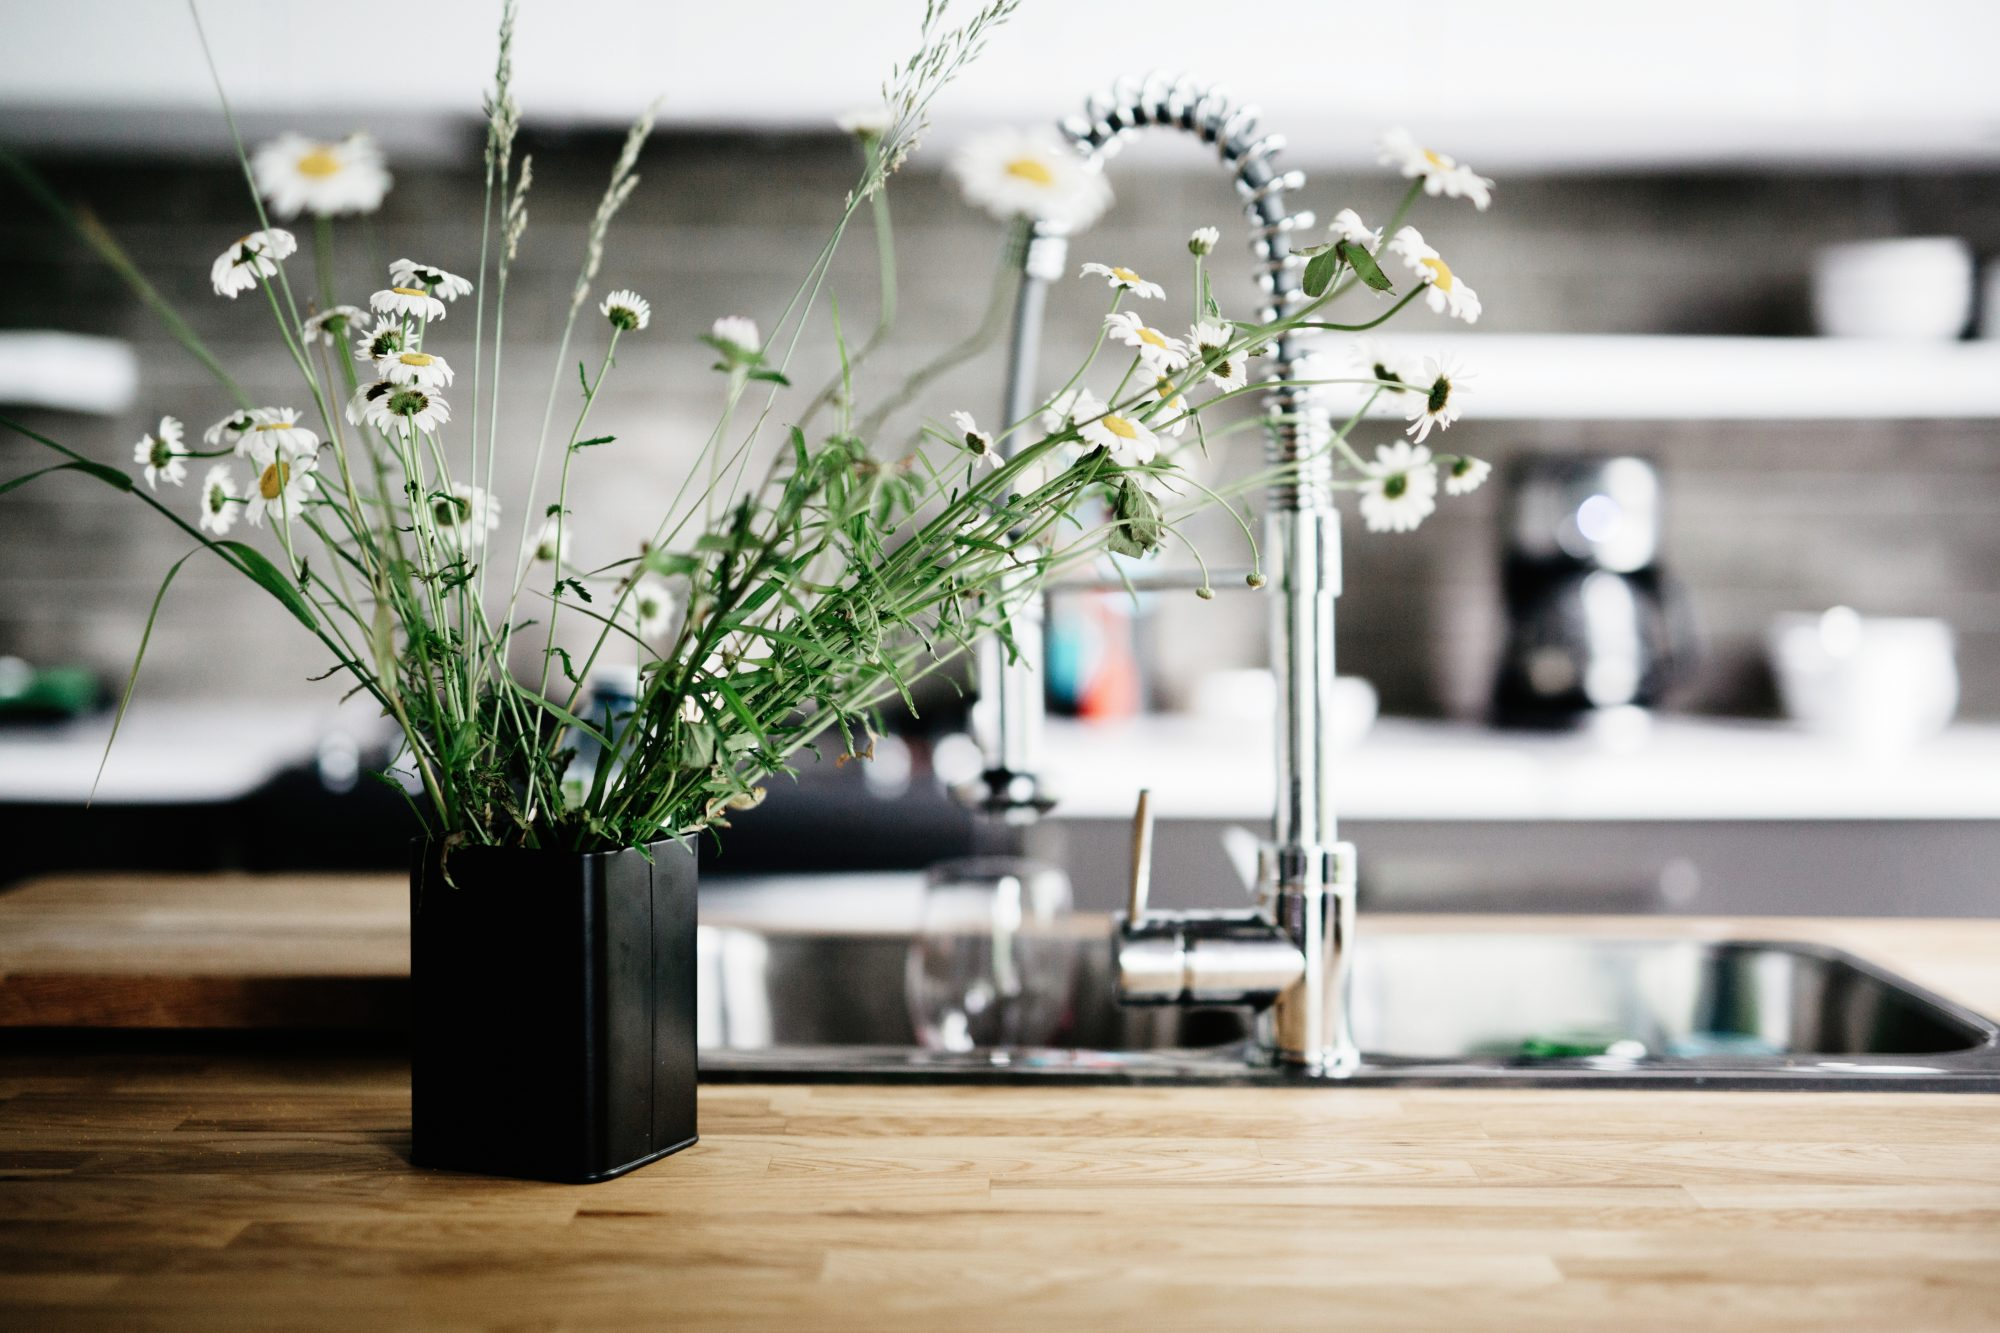 6 Easy Ways To Promote Positive Energy In Your Kitchen